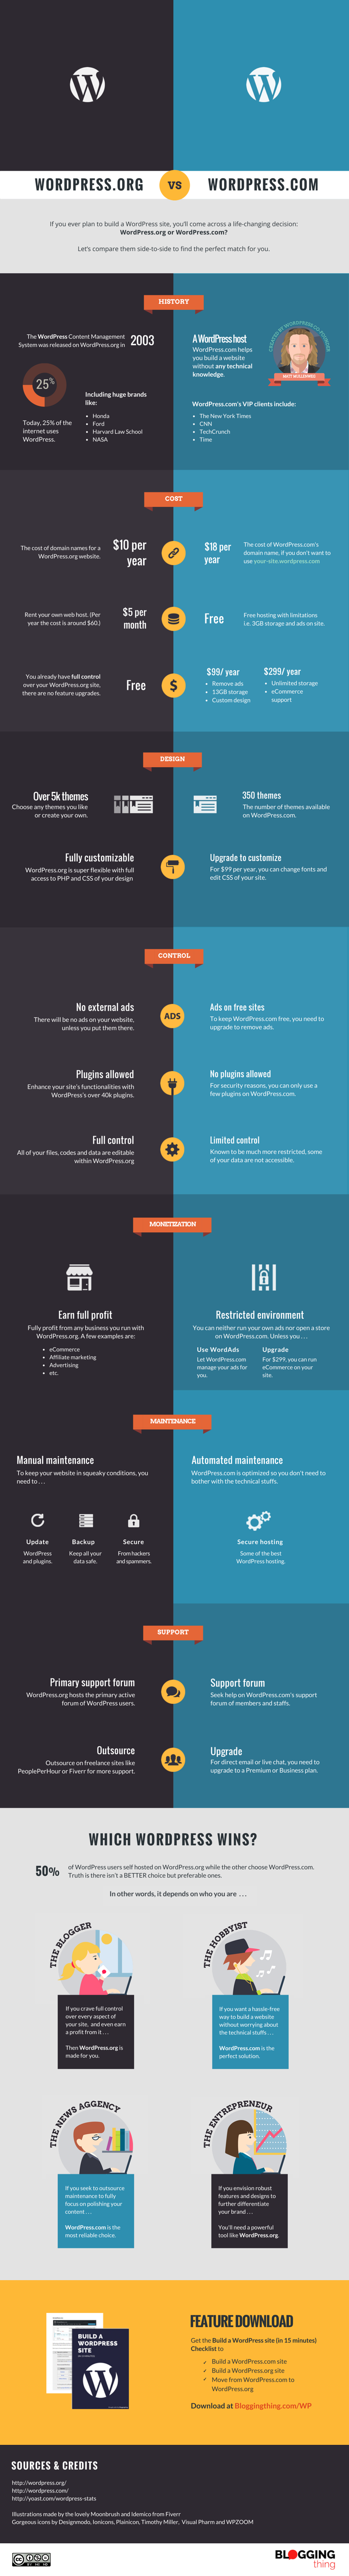 WordPress.org vs WordPress.com - Infographic